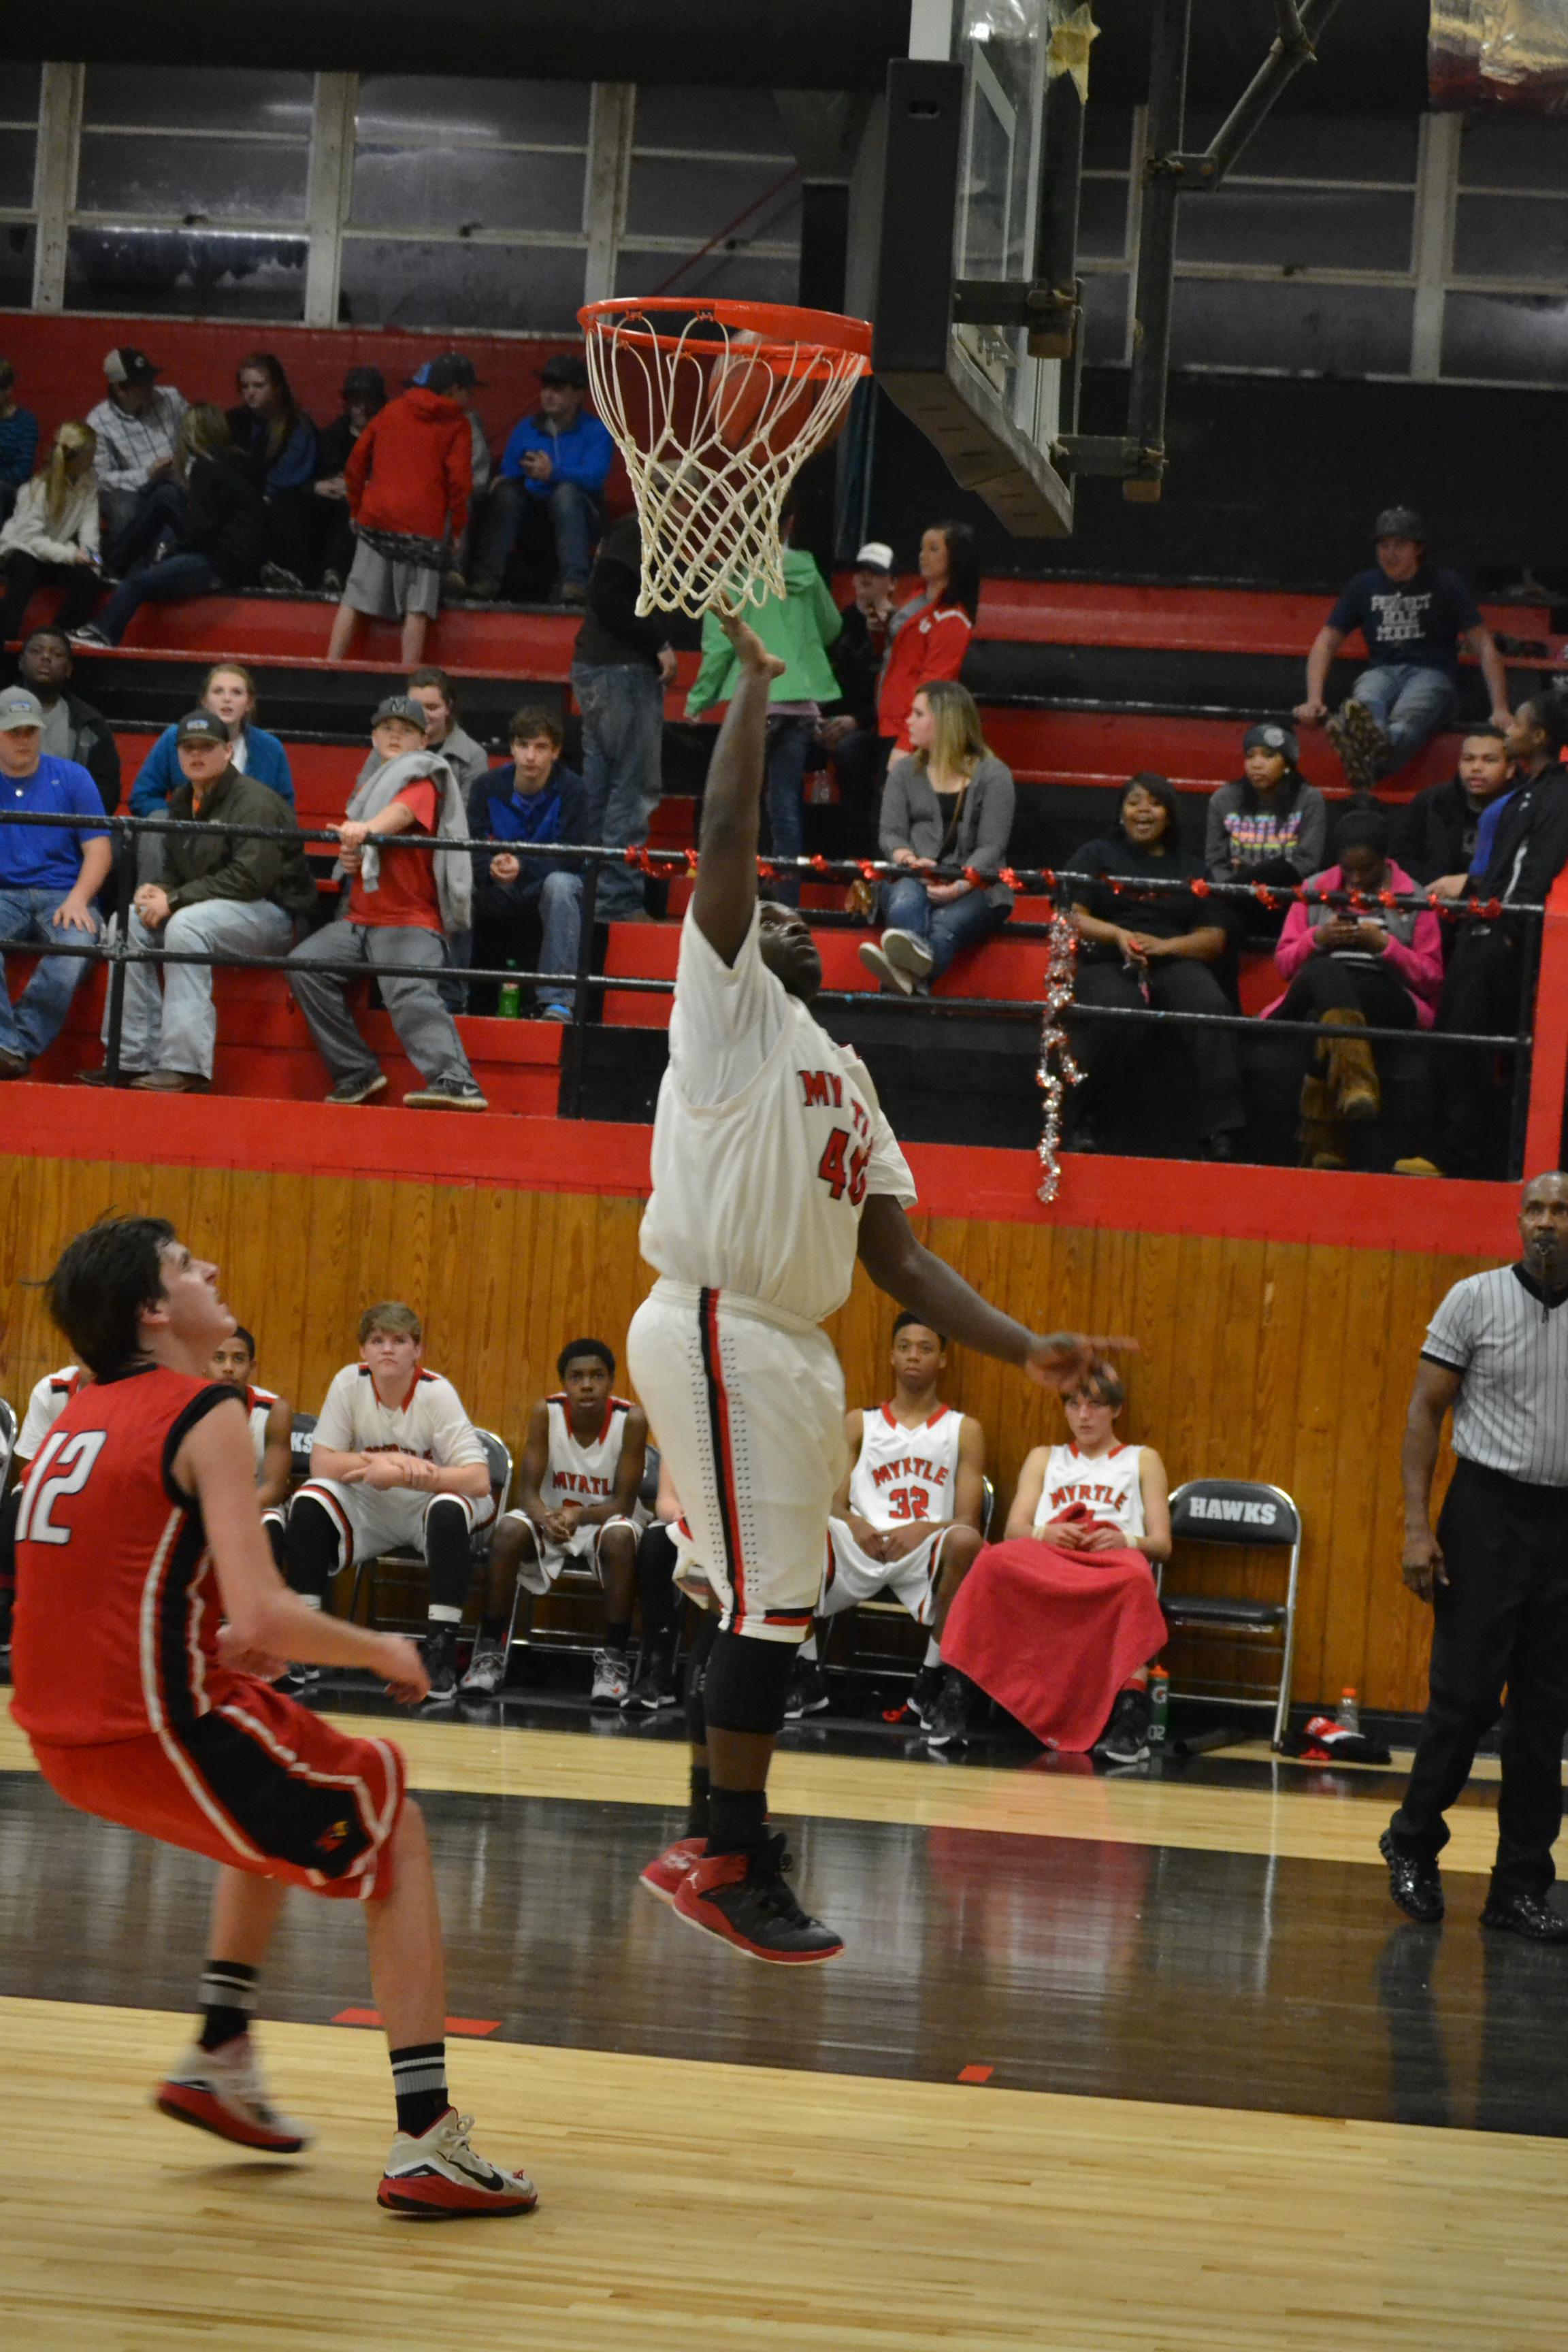 Anthony Lipsey scores on this layup during the third quarter. Photo By Dennis Clayton.